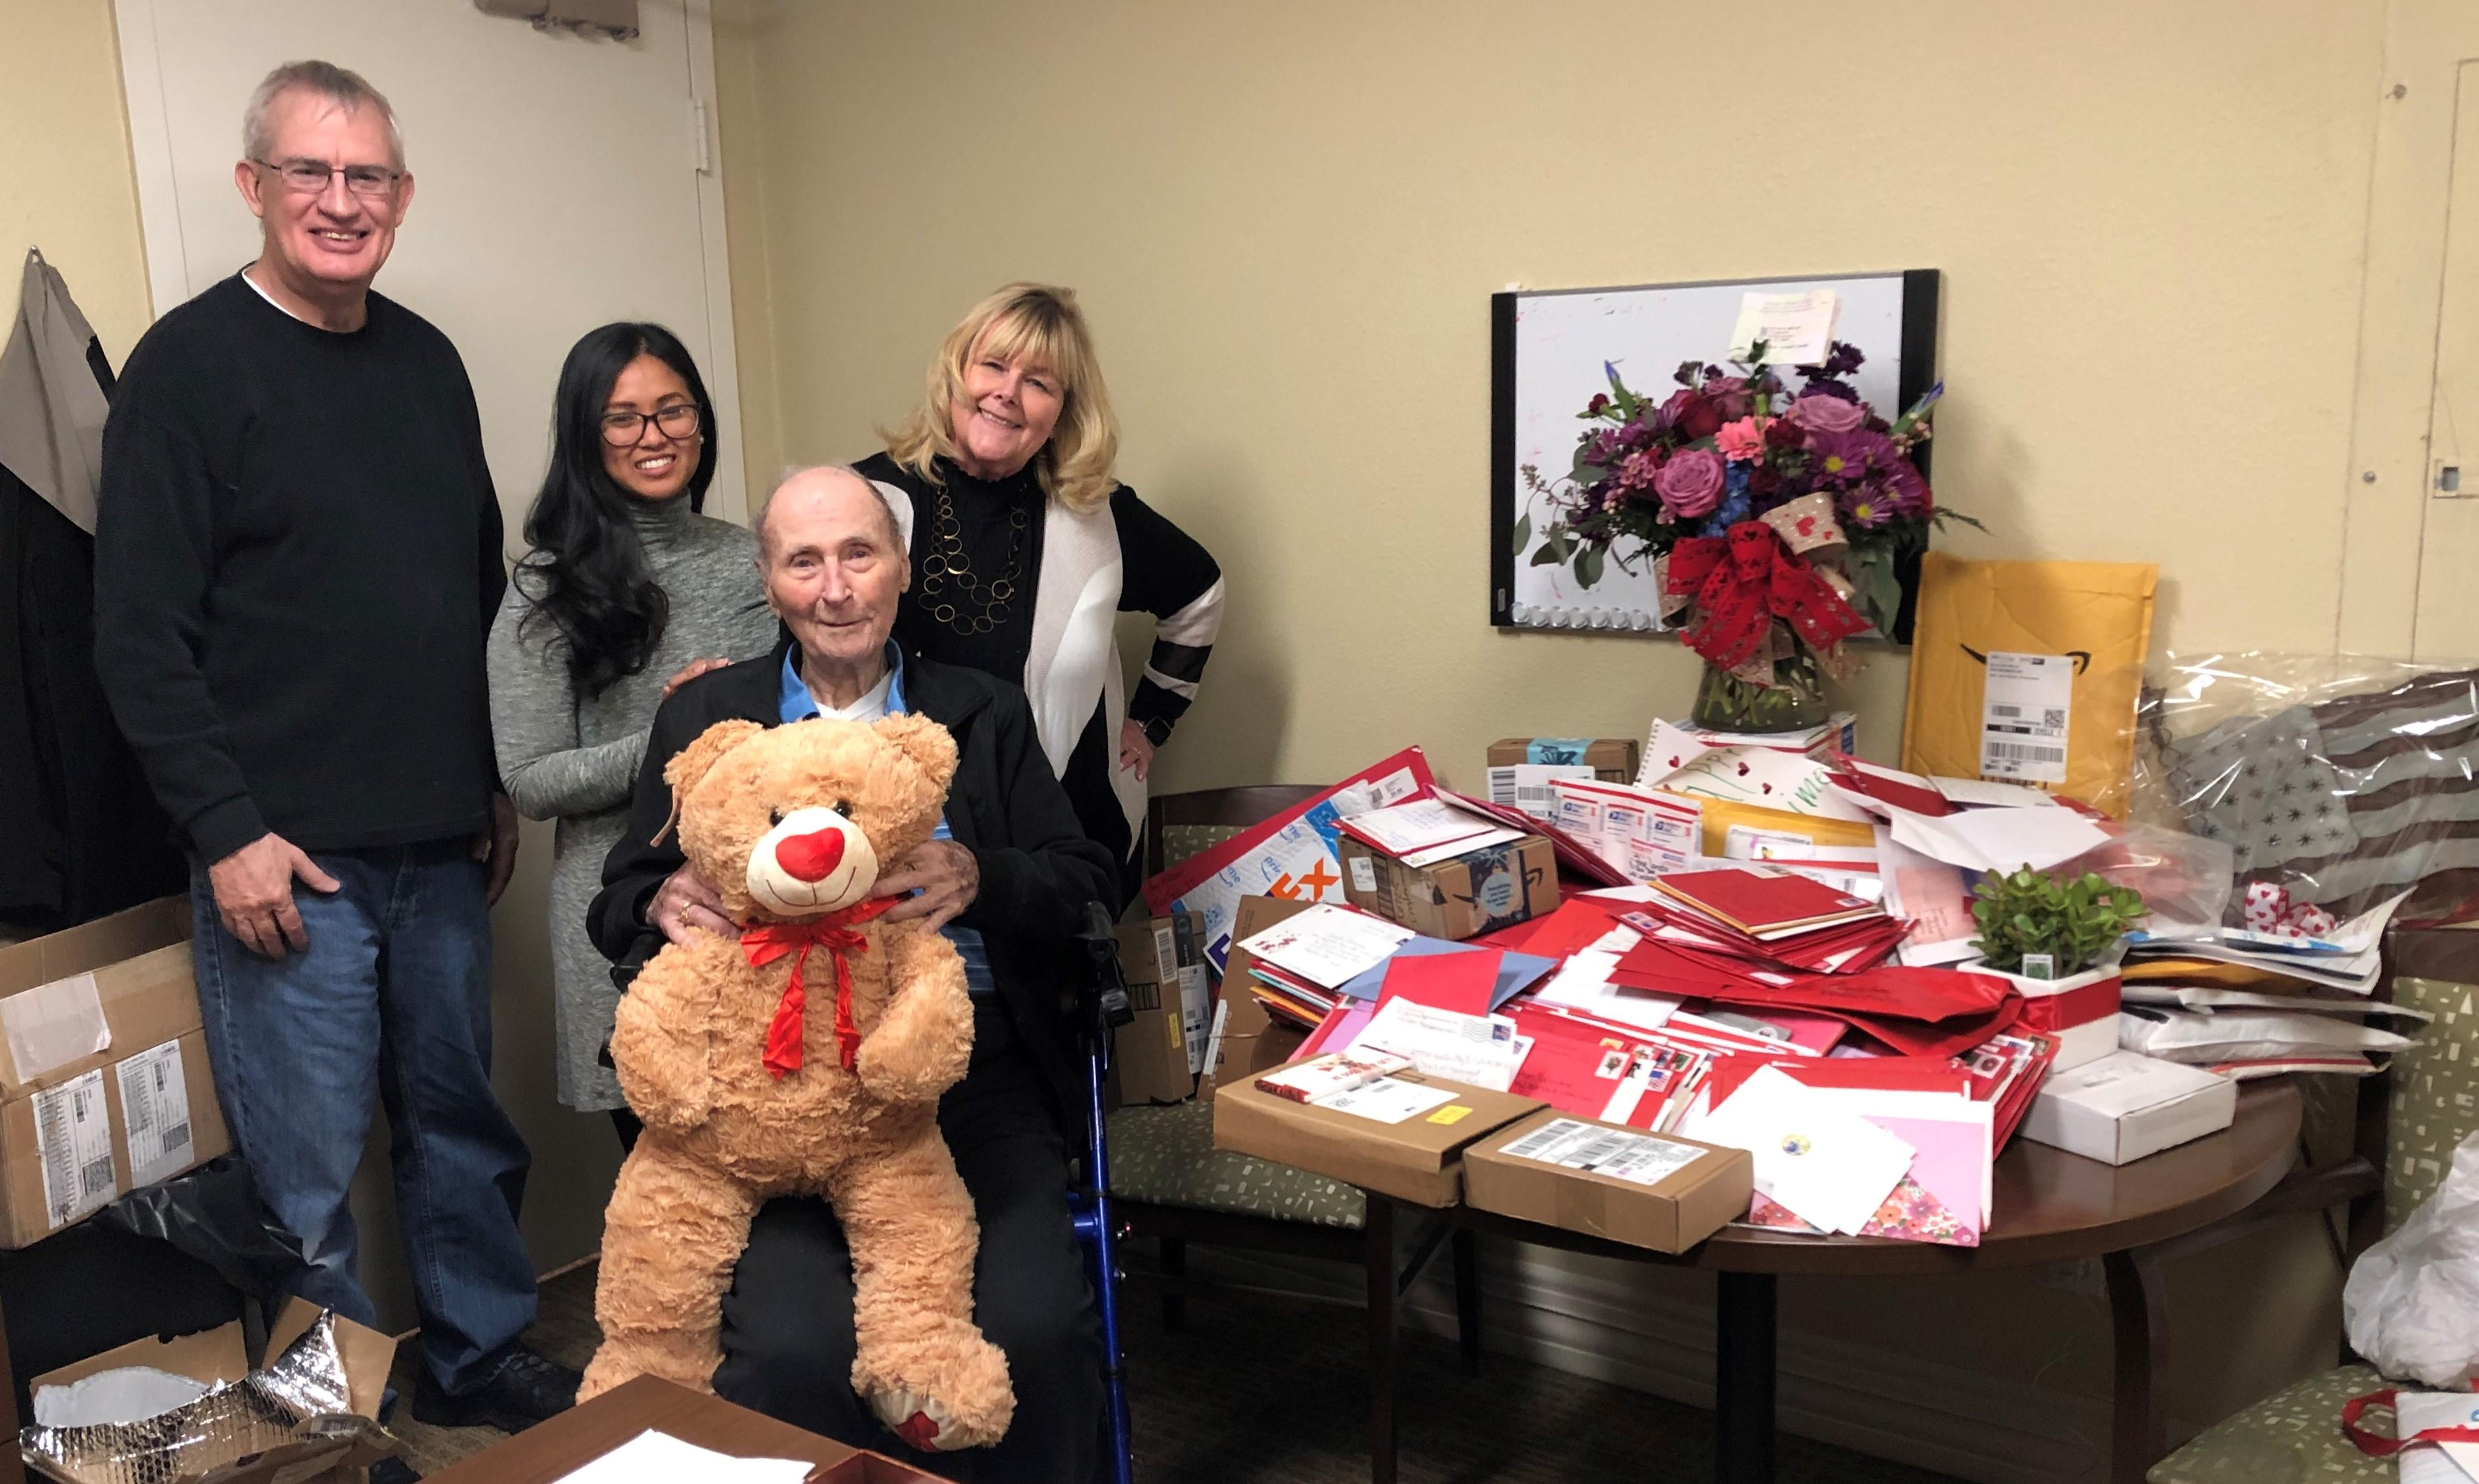 Maj. Bill White receives cards and gifts for Valentine's Day